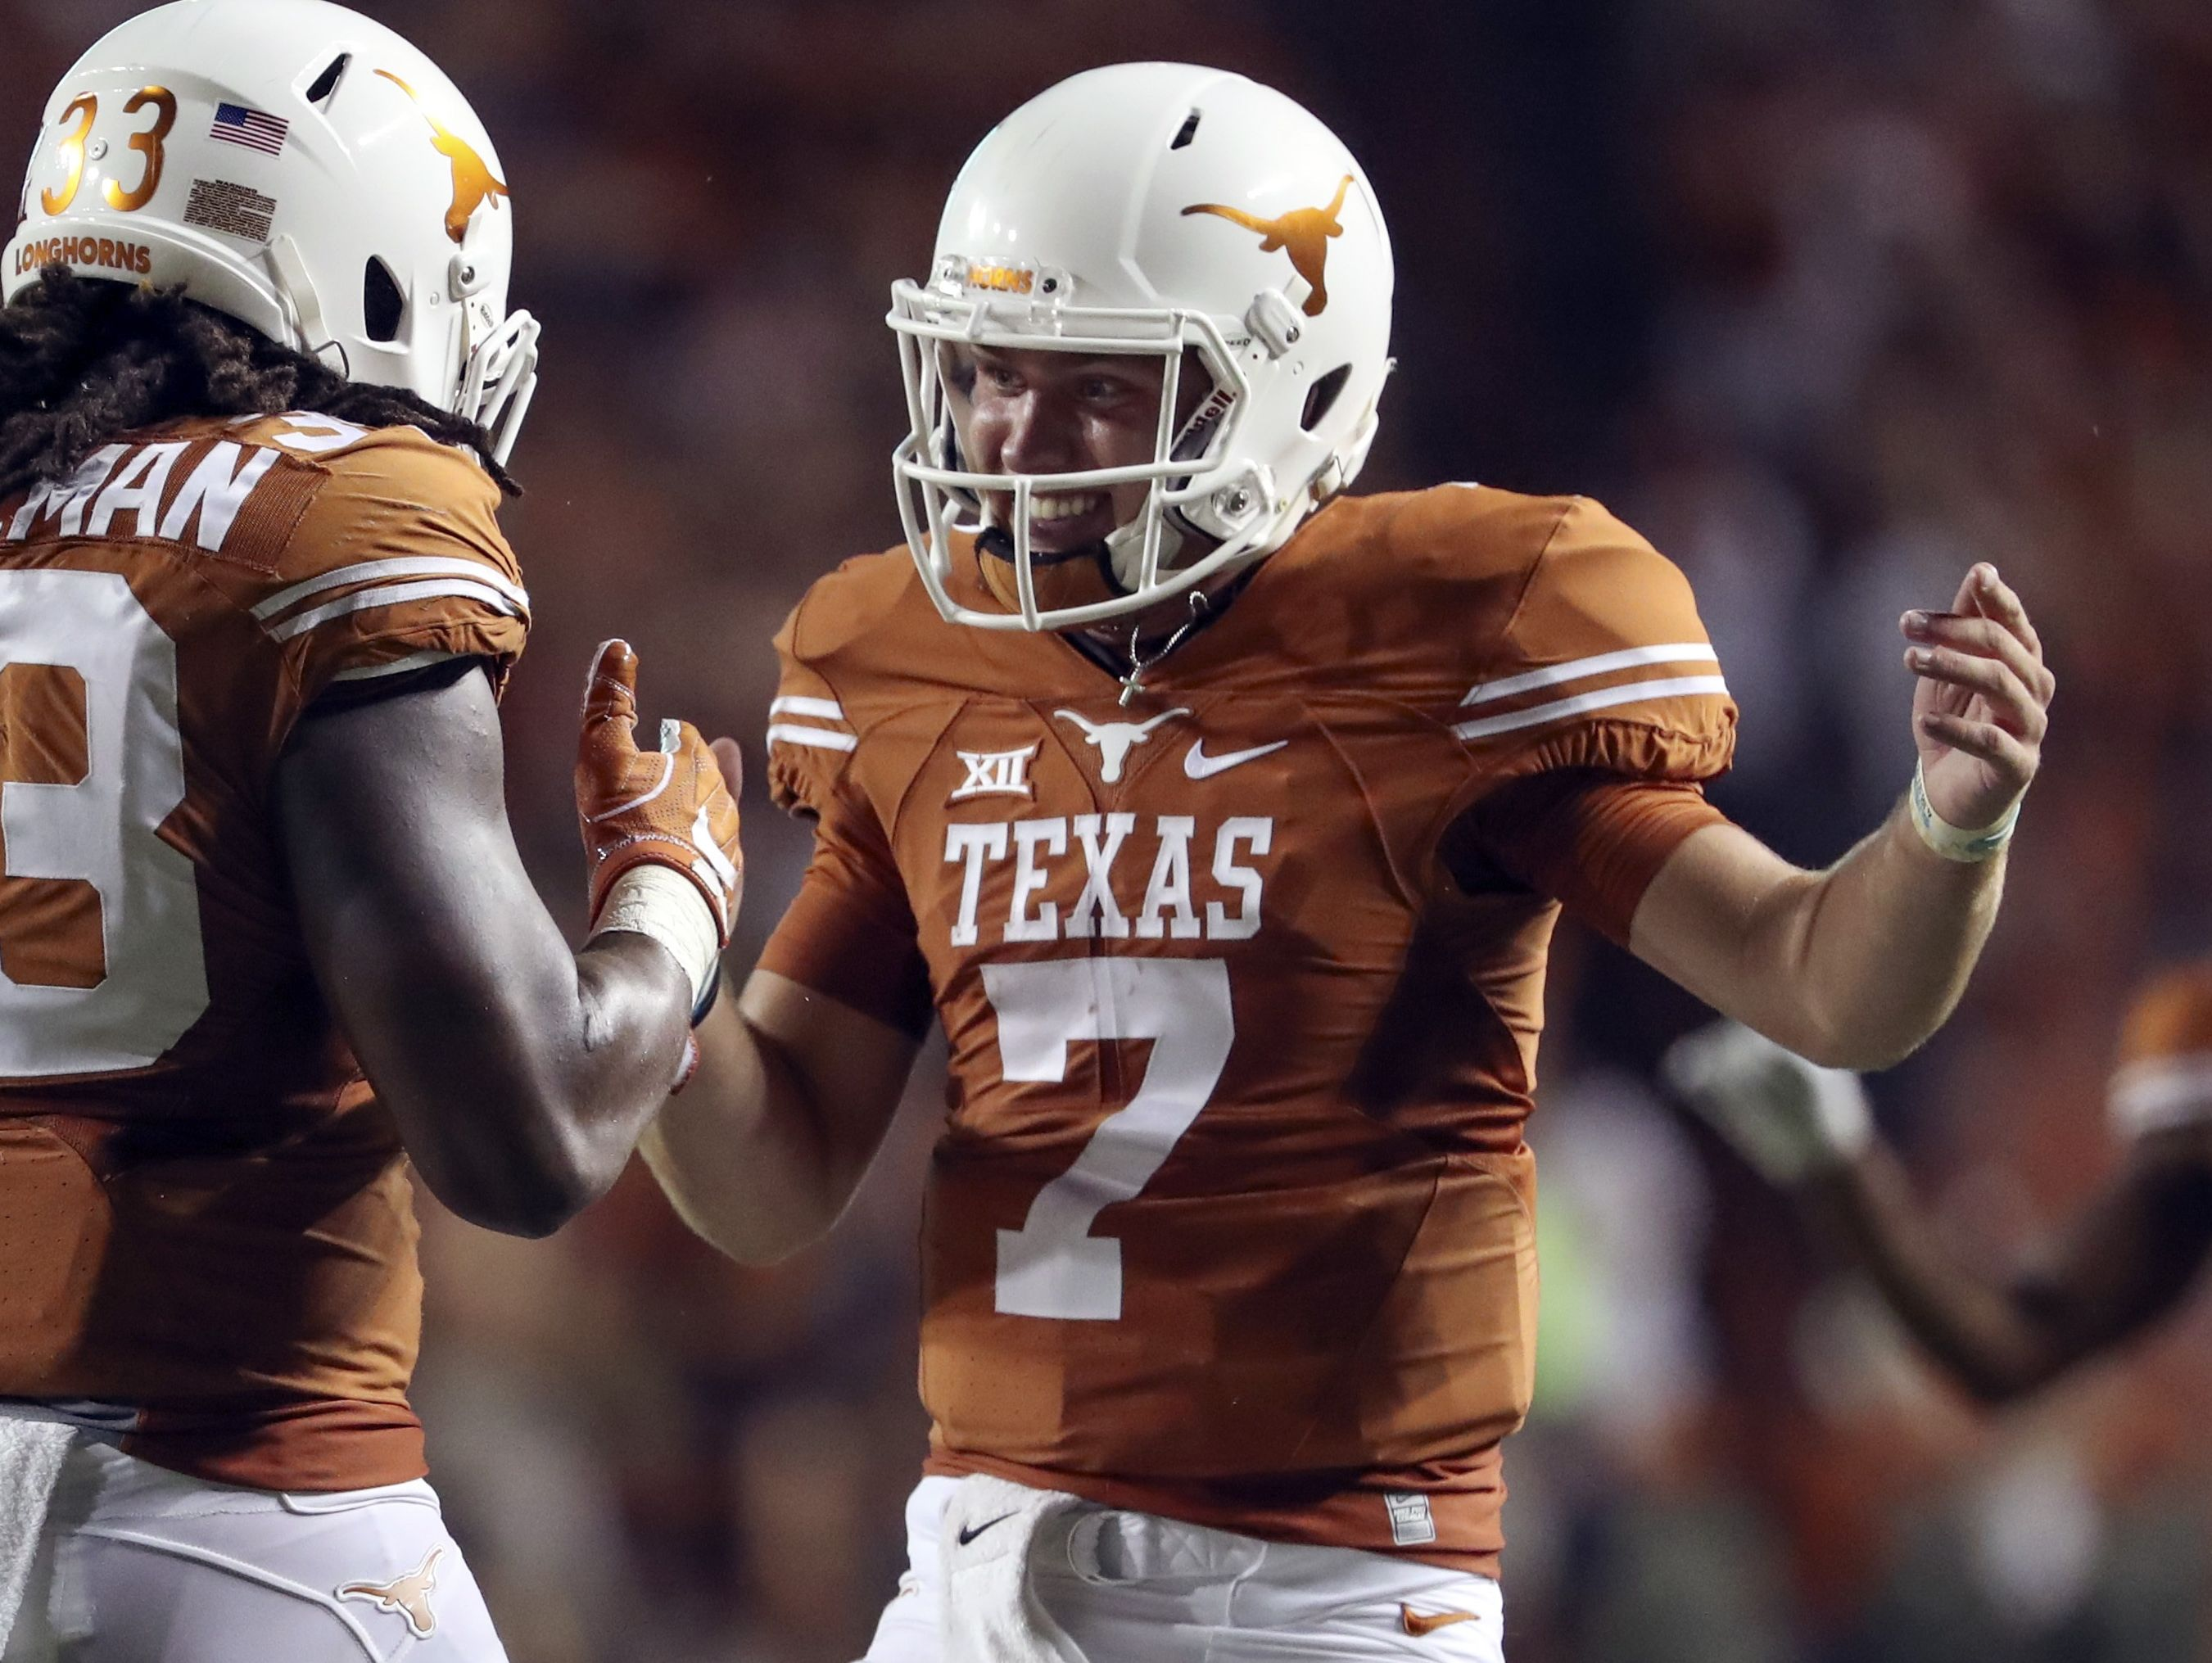 True freshman Shane Buechele threw for 280 yards and two TDs in Texas' wild season-opening win.